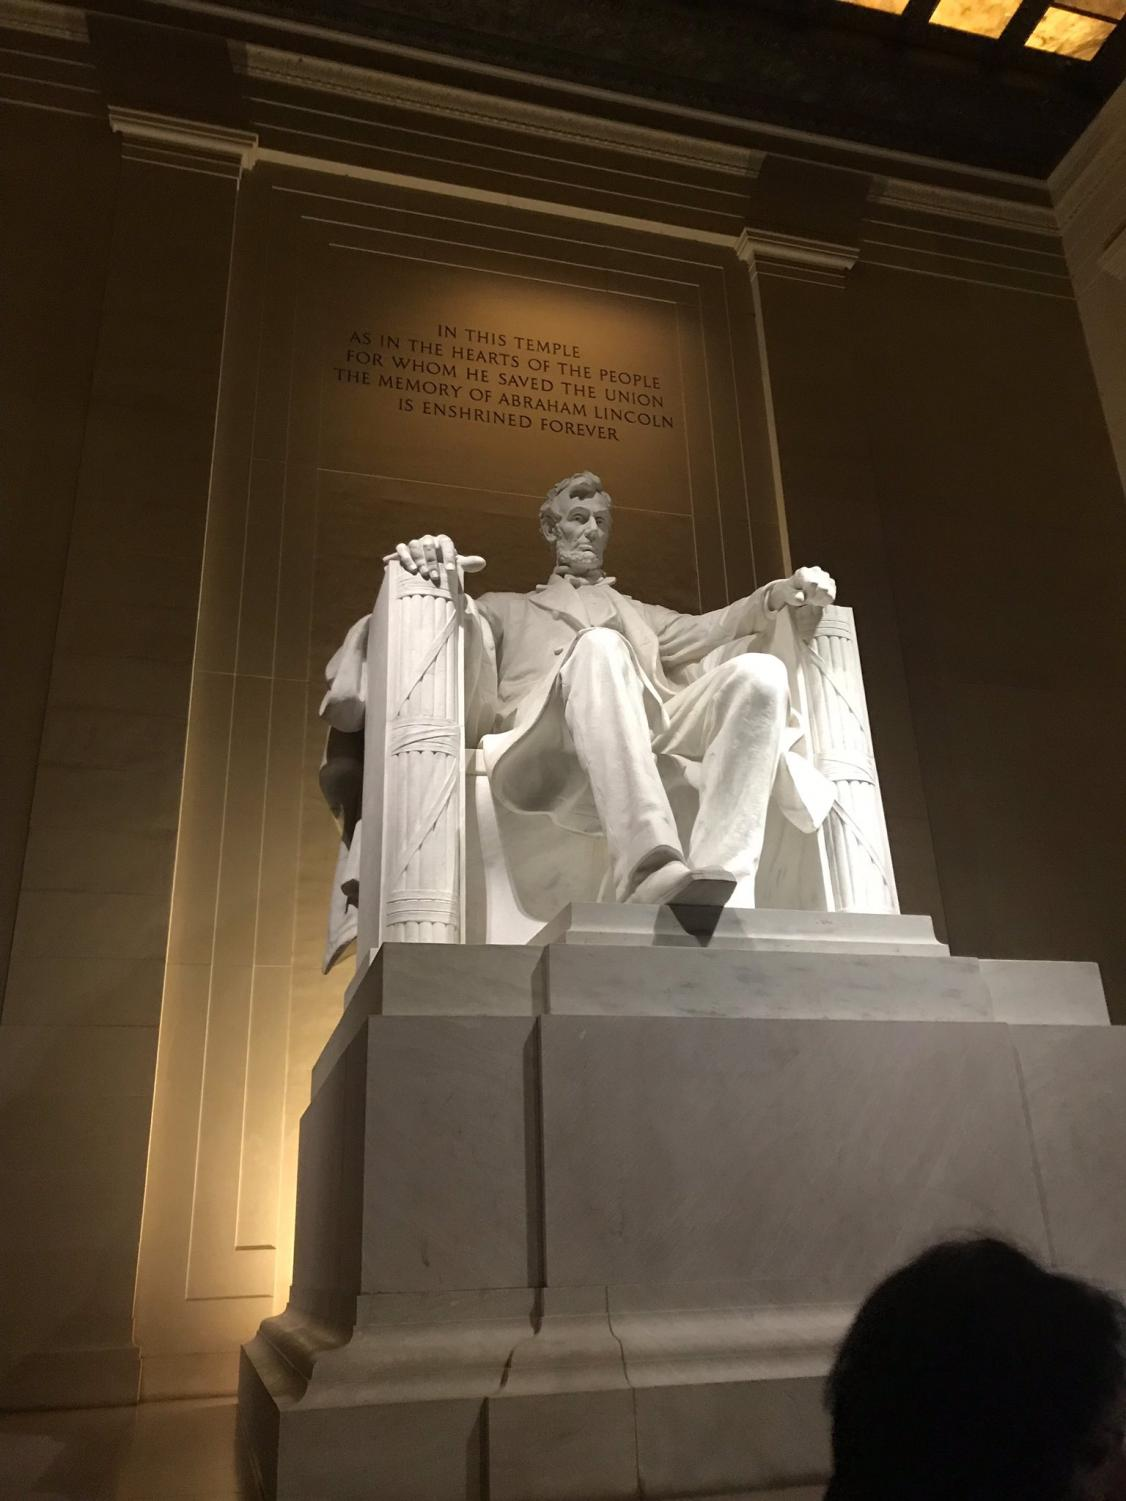 The Lincoln Memorial located in Washington D.C.